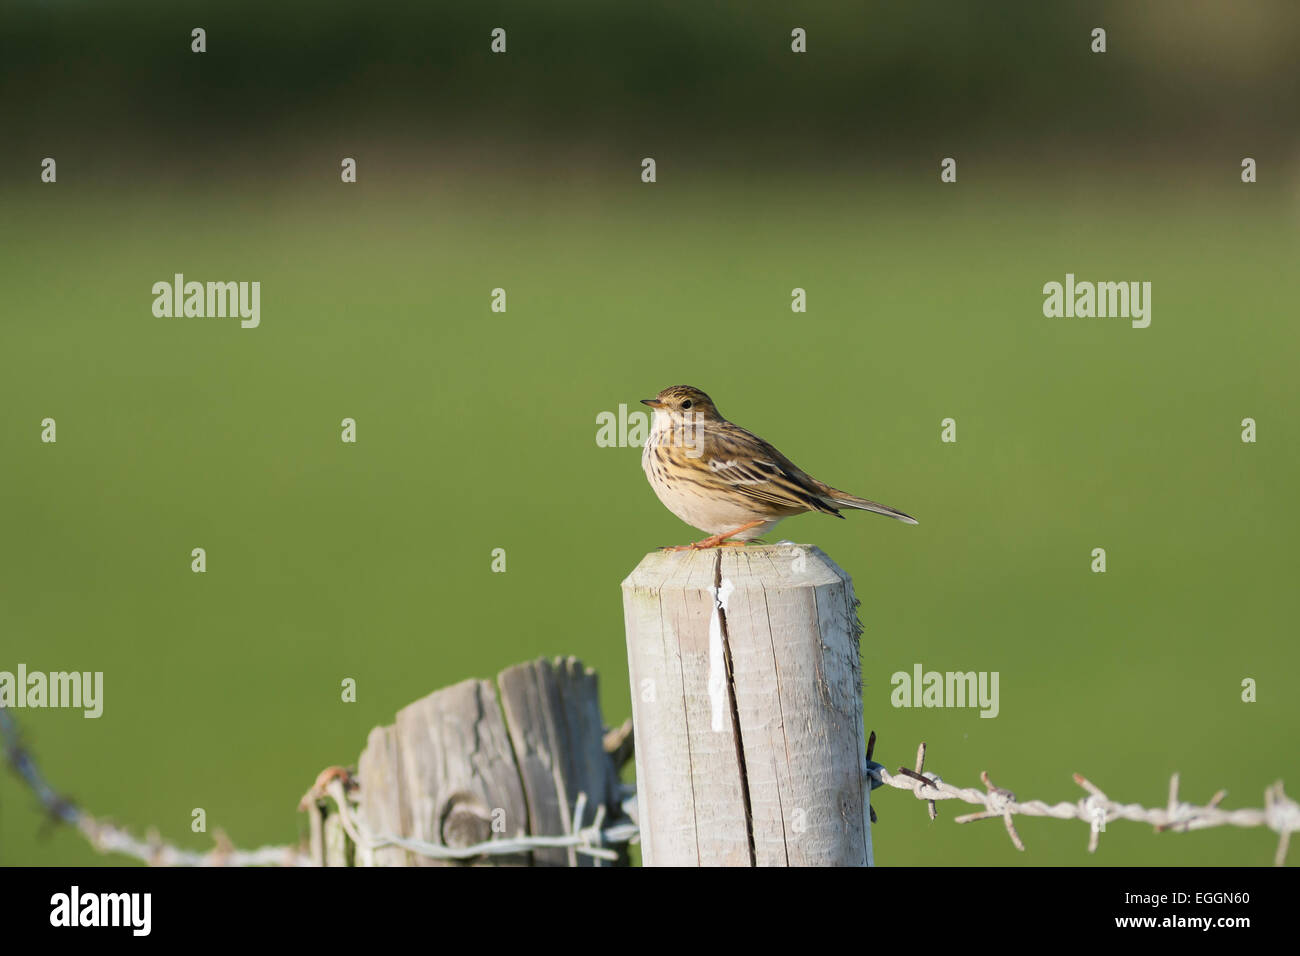 meadow pipit on fence post with barbed wire - Stock Image